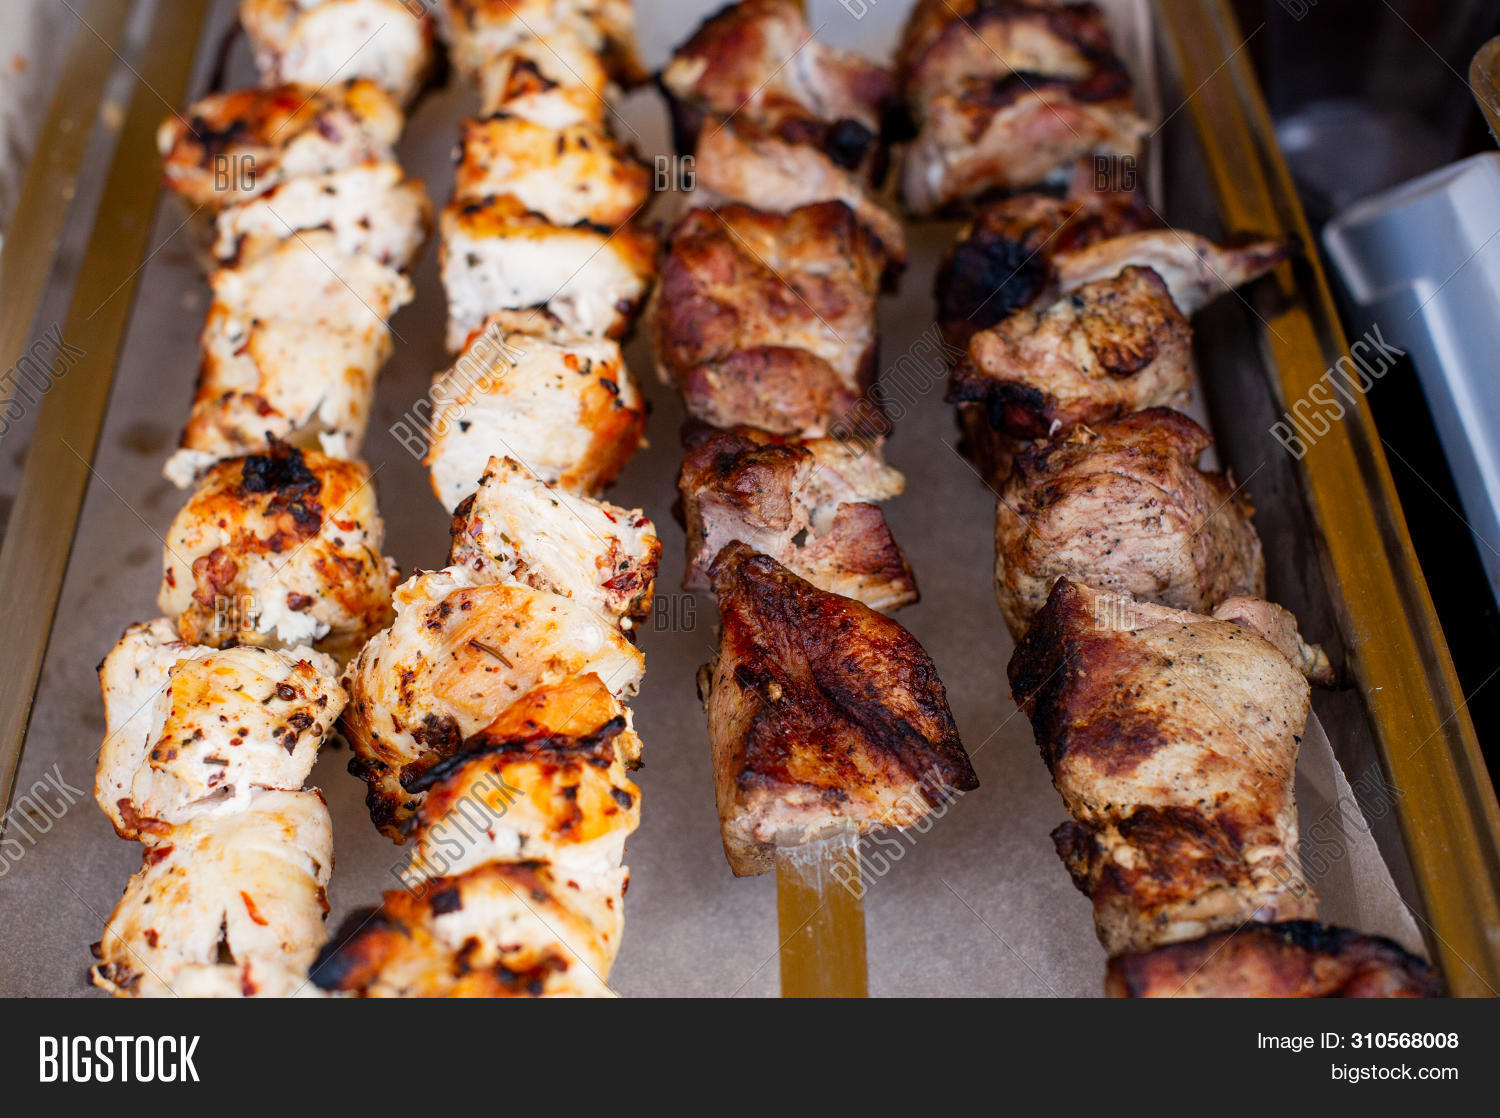 asian,background,bamboo,barbecue,bbq,beef,burn,chicken,chiken,closeup,cooked,cooking,cuisine,delicious,dinner,dish,eating,food,fresh,fried,gourmet,grill,grilled,healthy,hot,isolated,japanese,juicy,kabob,kebab,life,liver,lunch,meal,meat,onion,picnic,plate,pork,red,roast,roasted,skewer,snack,spices,stick,tasty,tomato,white,yakitori